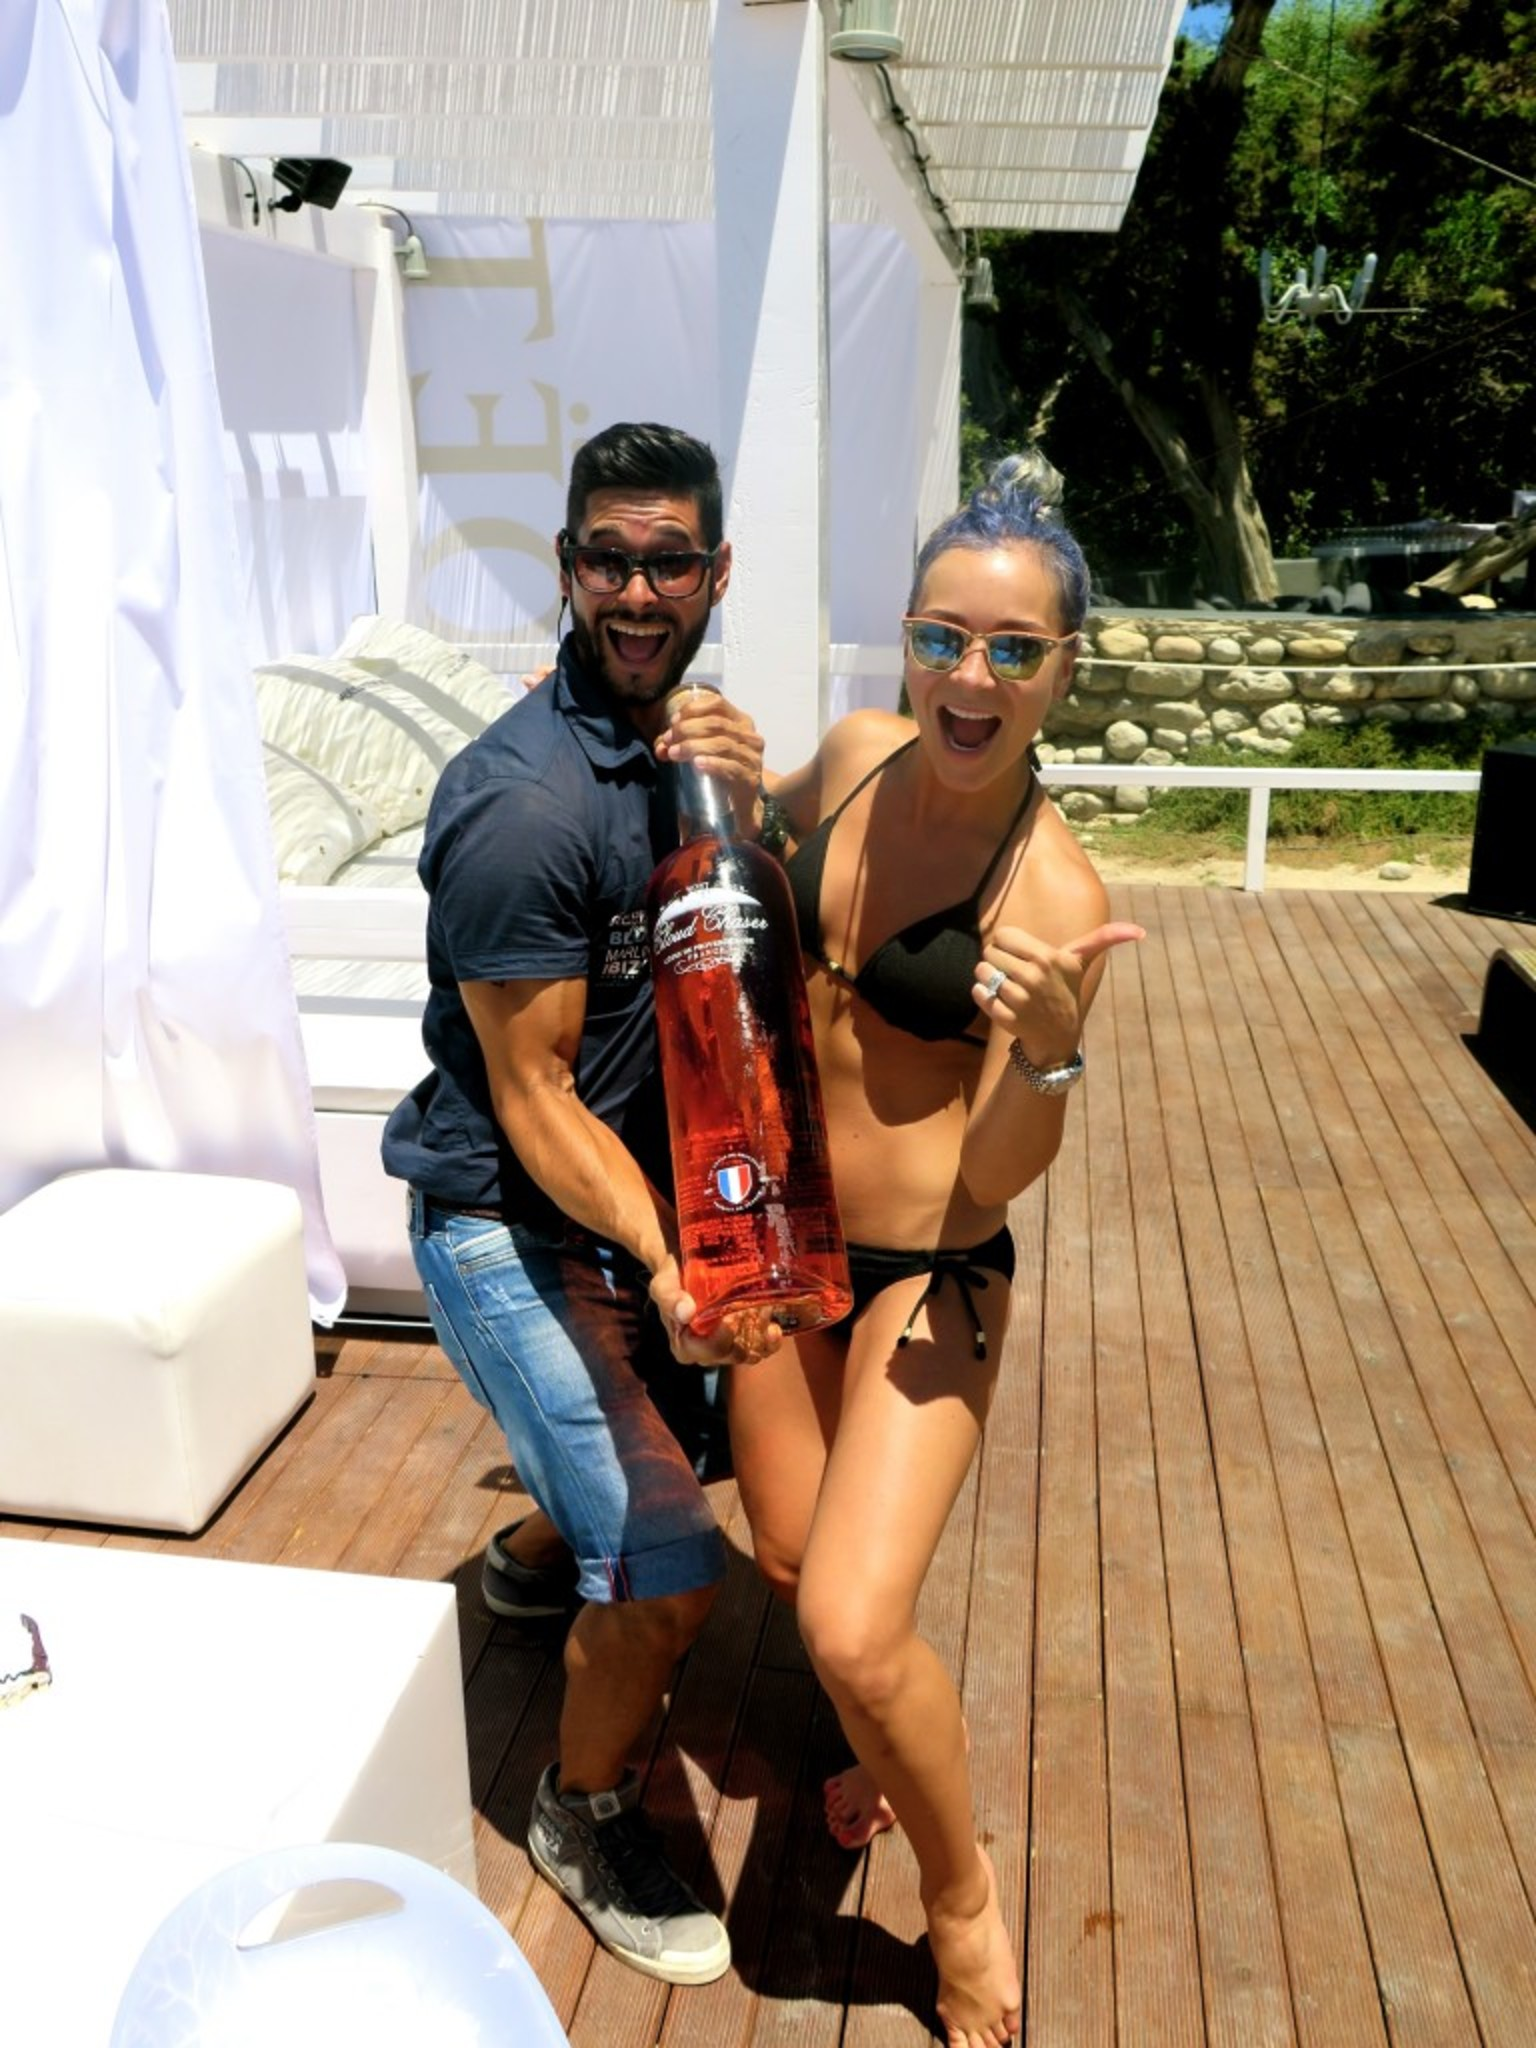 Blue Marlin - MOET CABANA on a sunny Sunday in Ibiza <3 LEGGO! The celebration continues and we all had a blast. Here to start with - we ordered a bottle of Rose, 9l <3